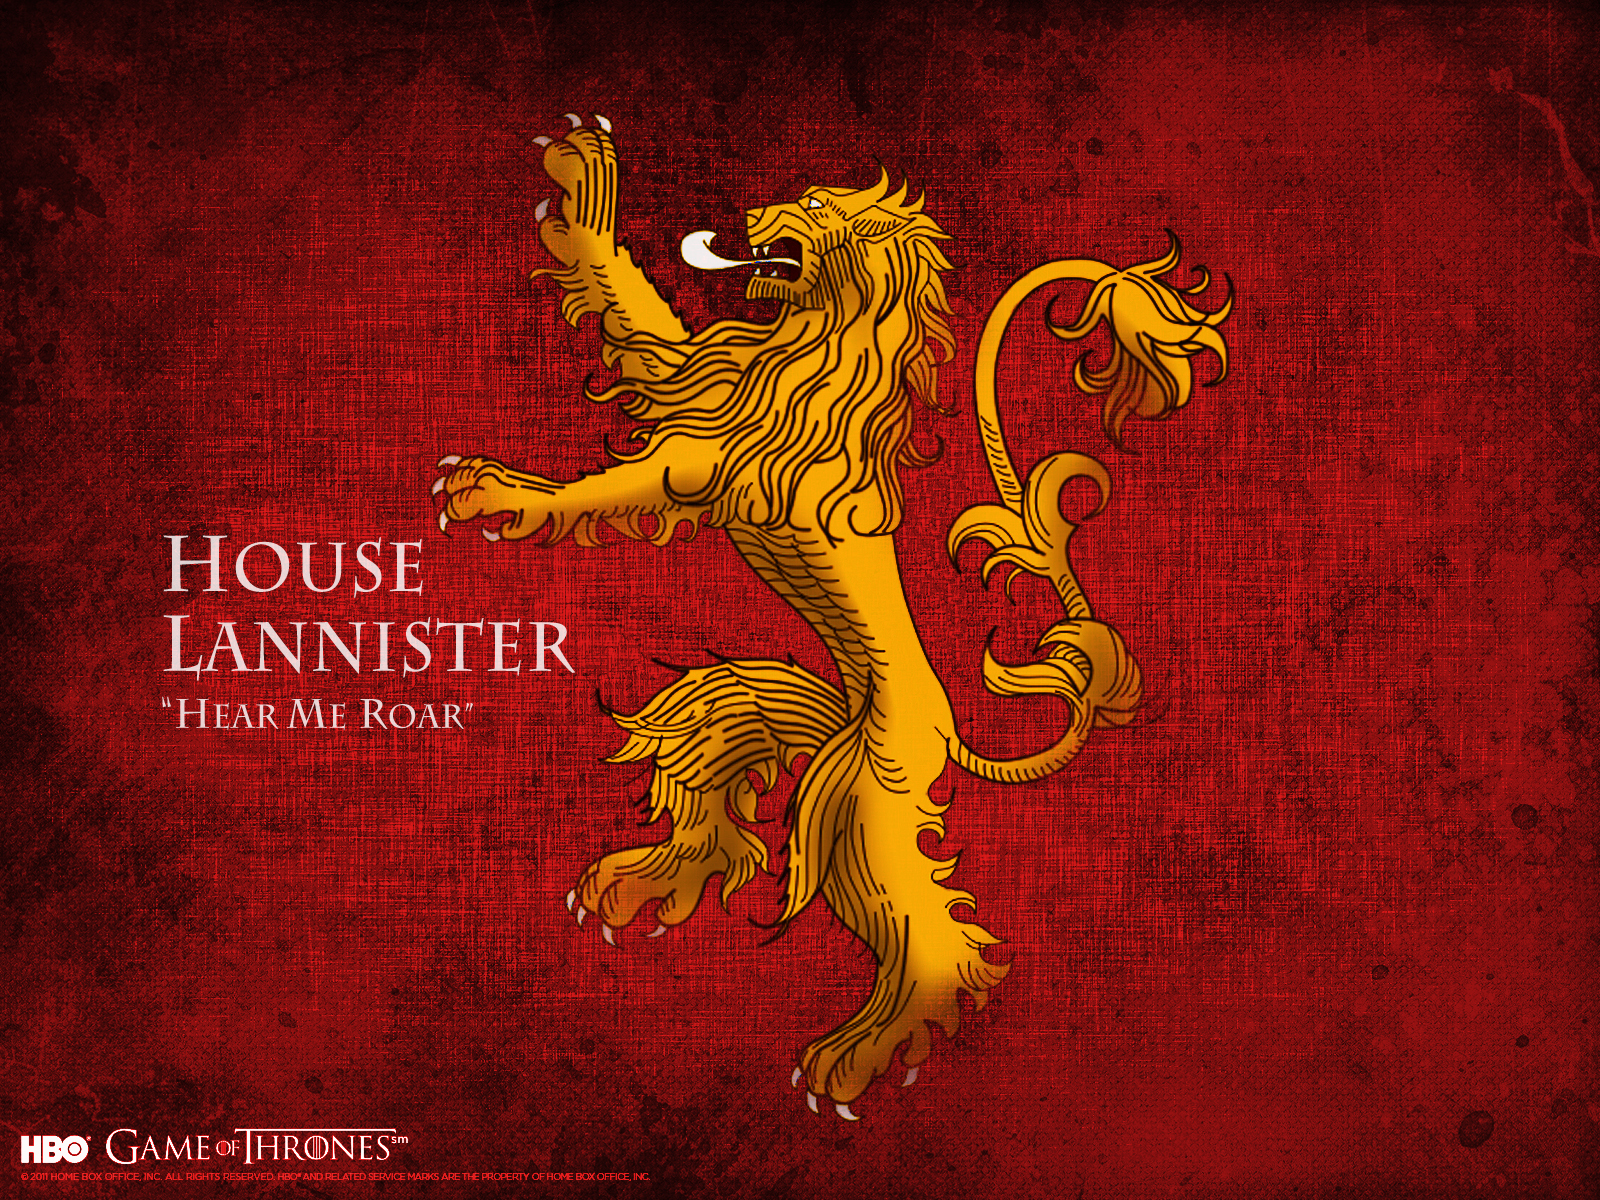 House Lannister images House Lannister HD wallpaper and ...